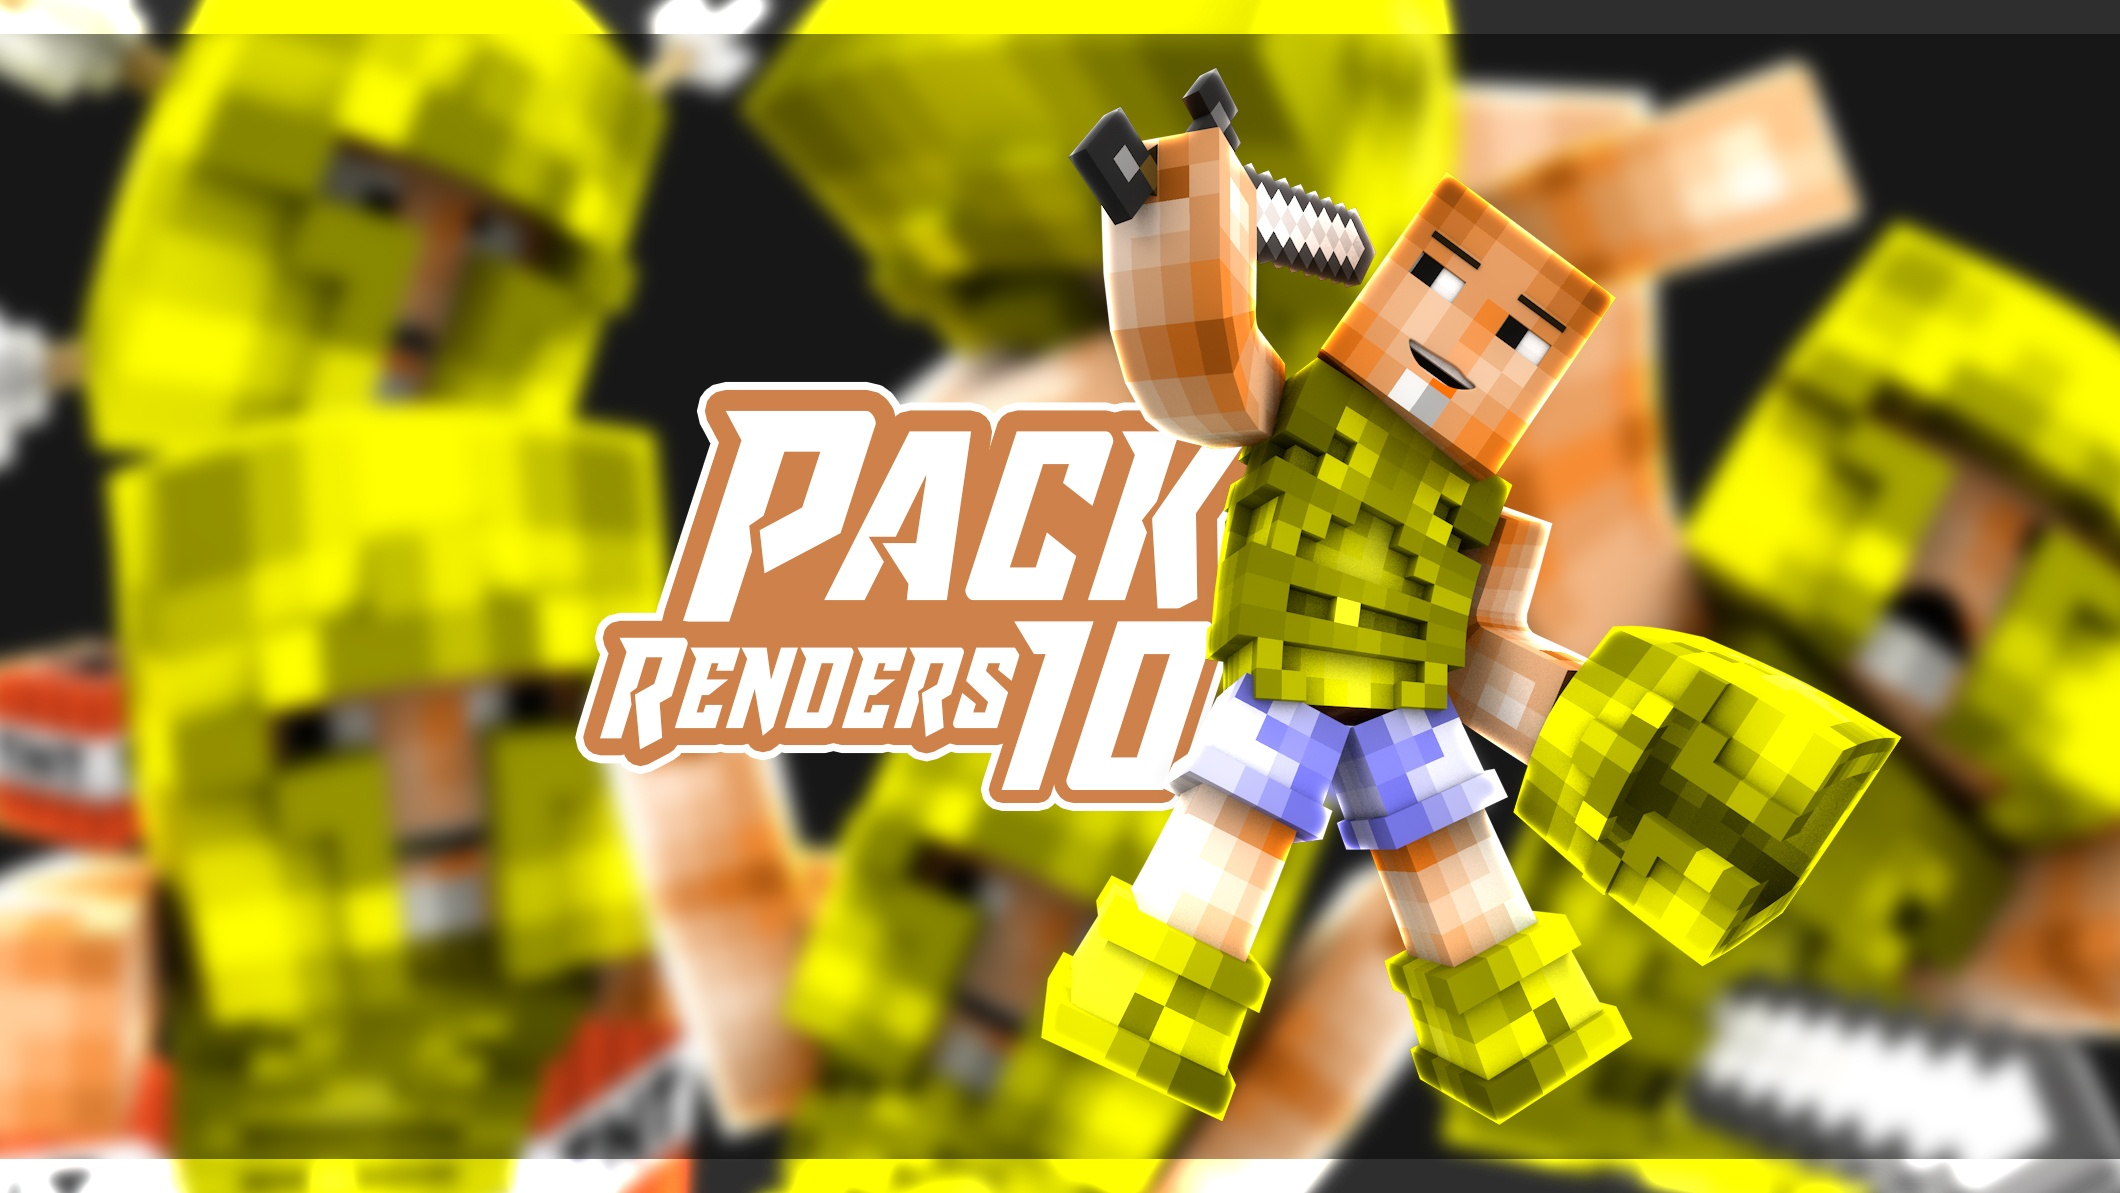 PACK 10 RENDERS  [ALL STYLES]